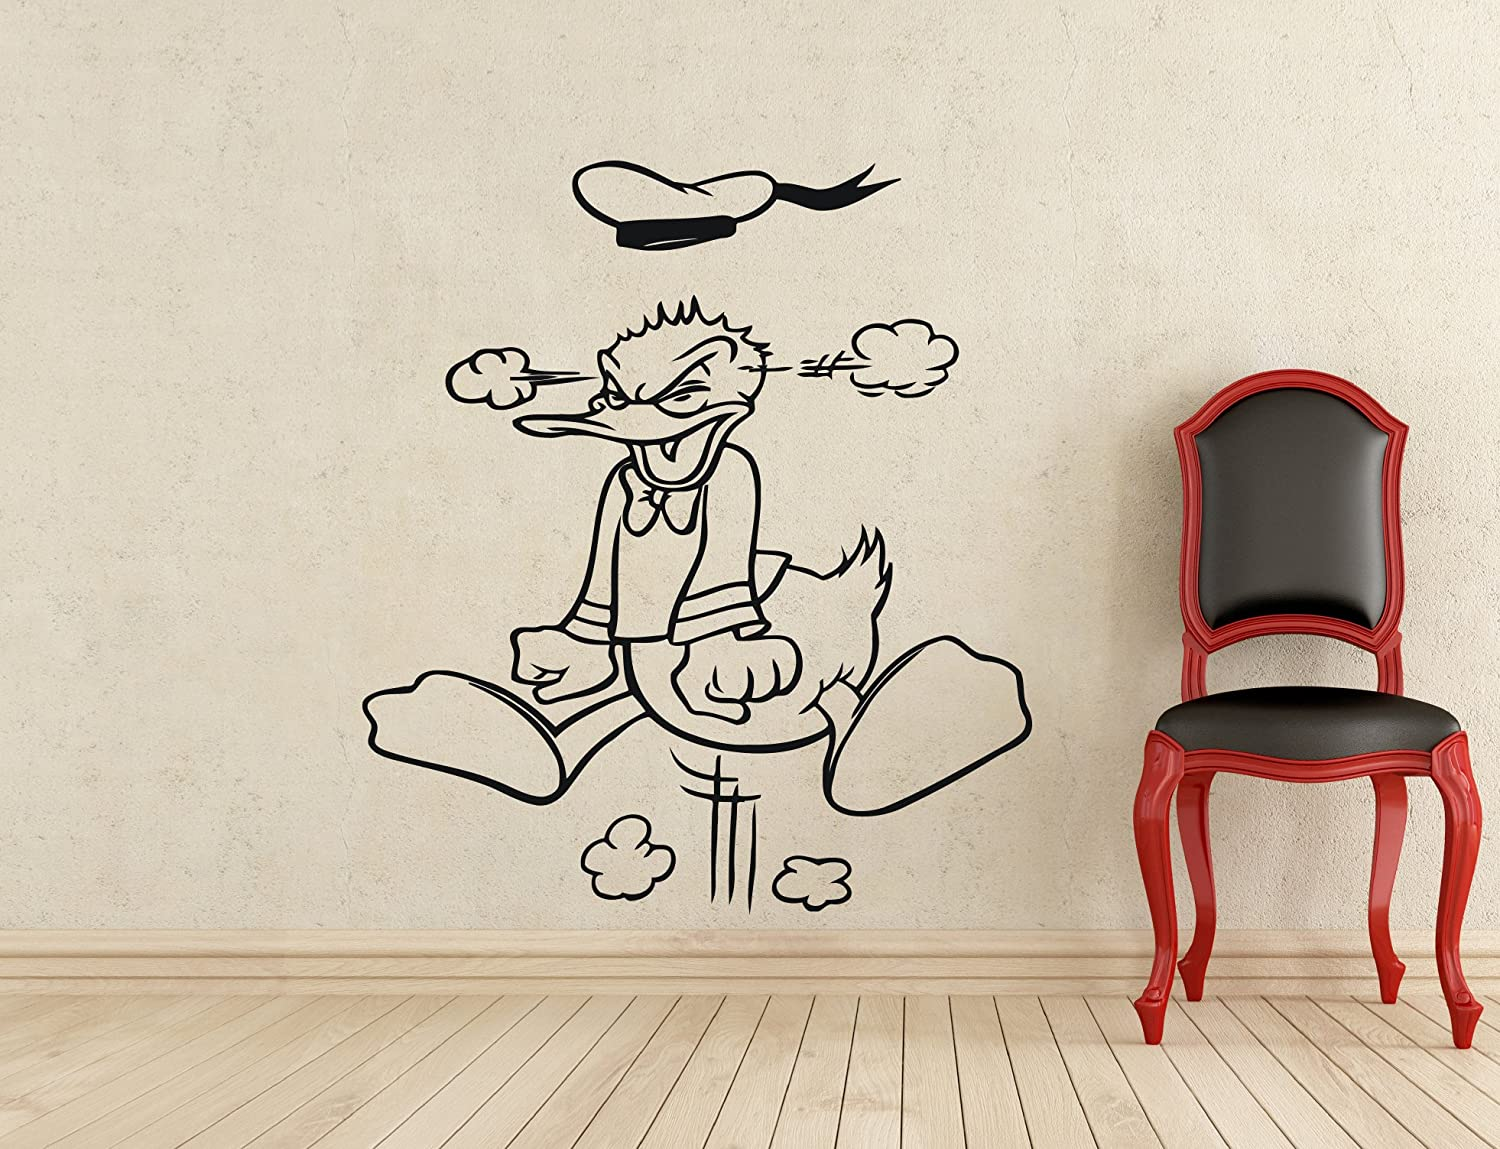 Angry Donald Duck Wall Decal Walt Disney Cartoons Vinyl Sticker Home Interior Art Wall Decoration Kids Girl Boy Room Nursery Mural Removable Waterproof Decal (350z)